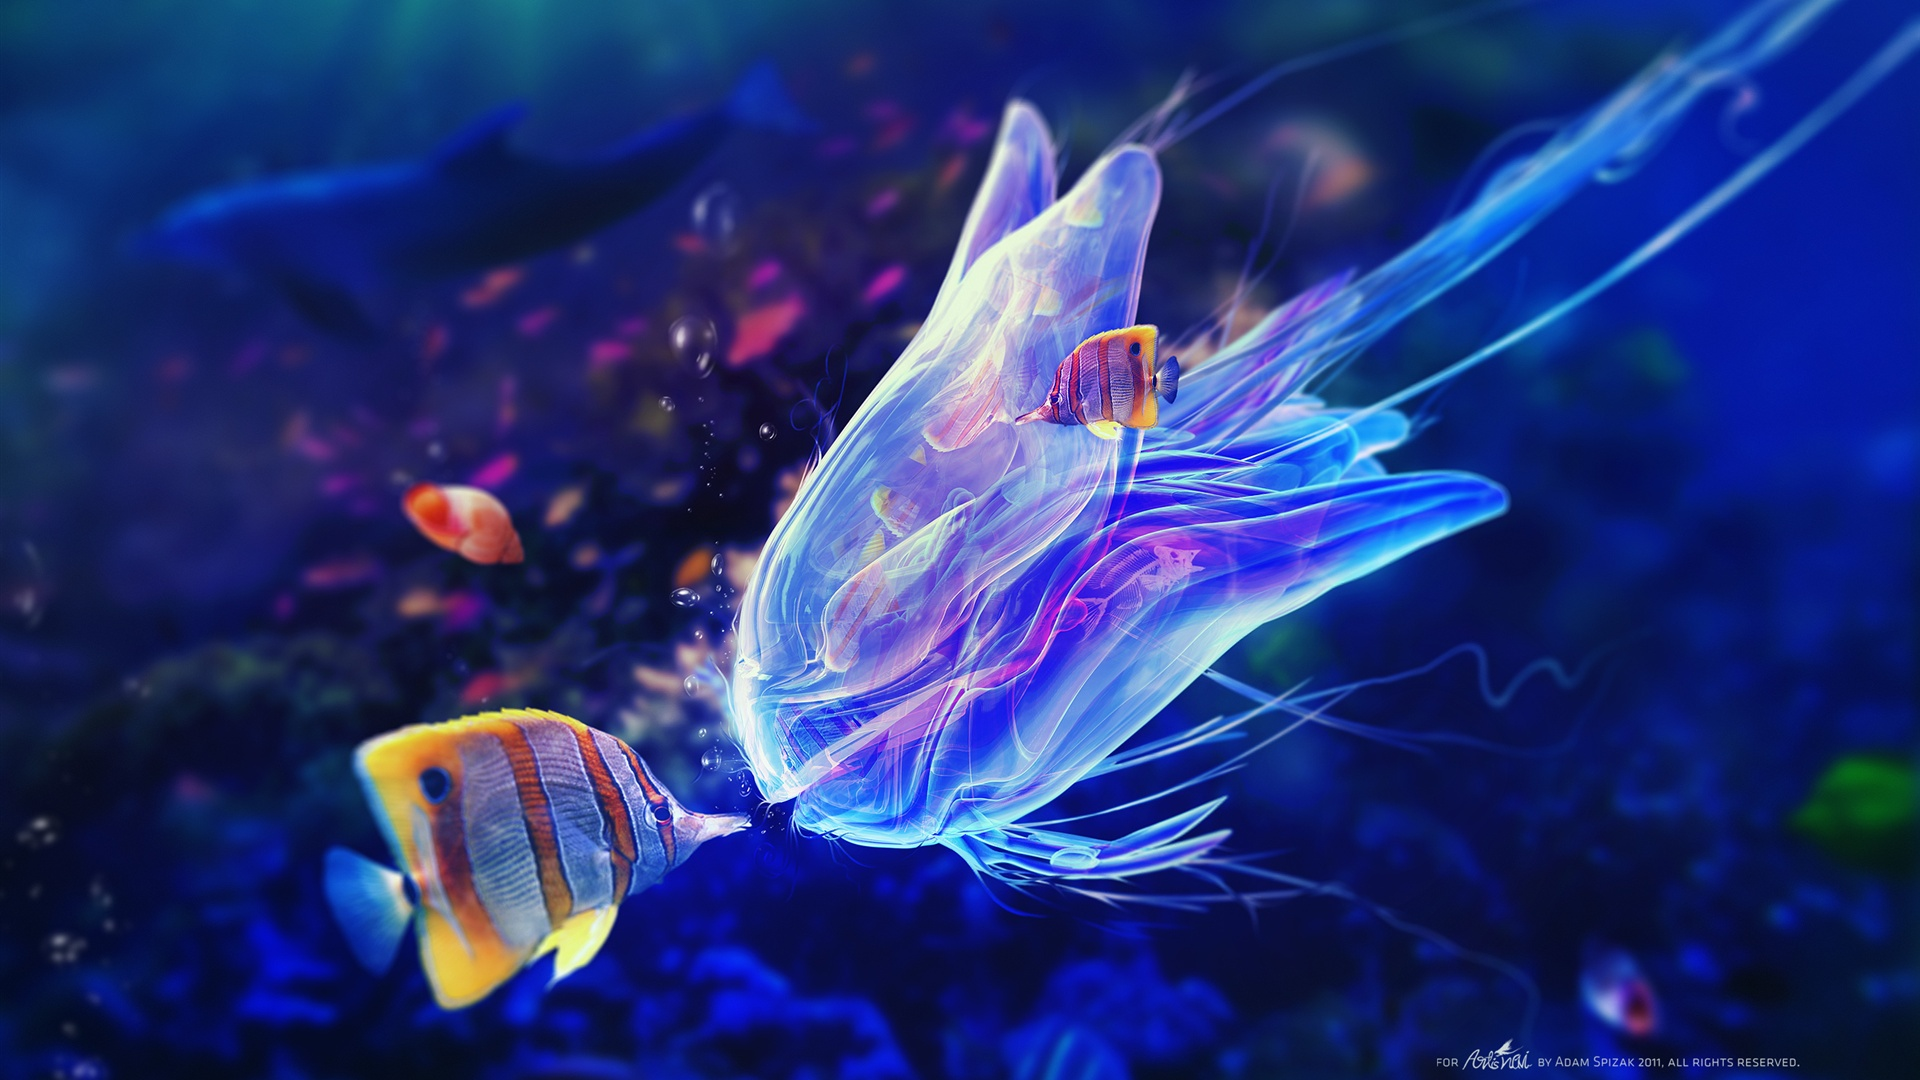 Wallpaper download underwater world jellyfish and clown fish wallpaper